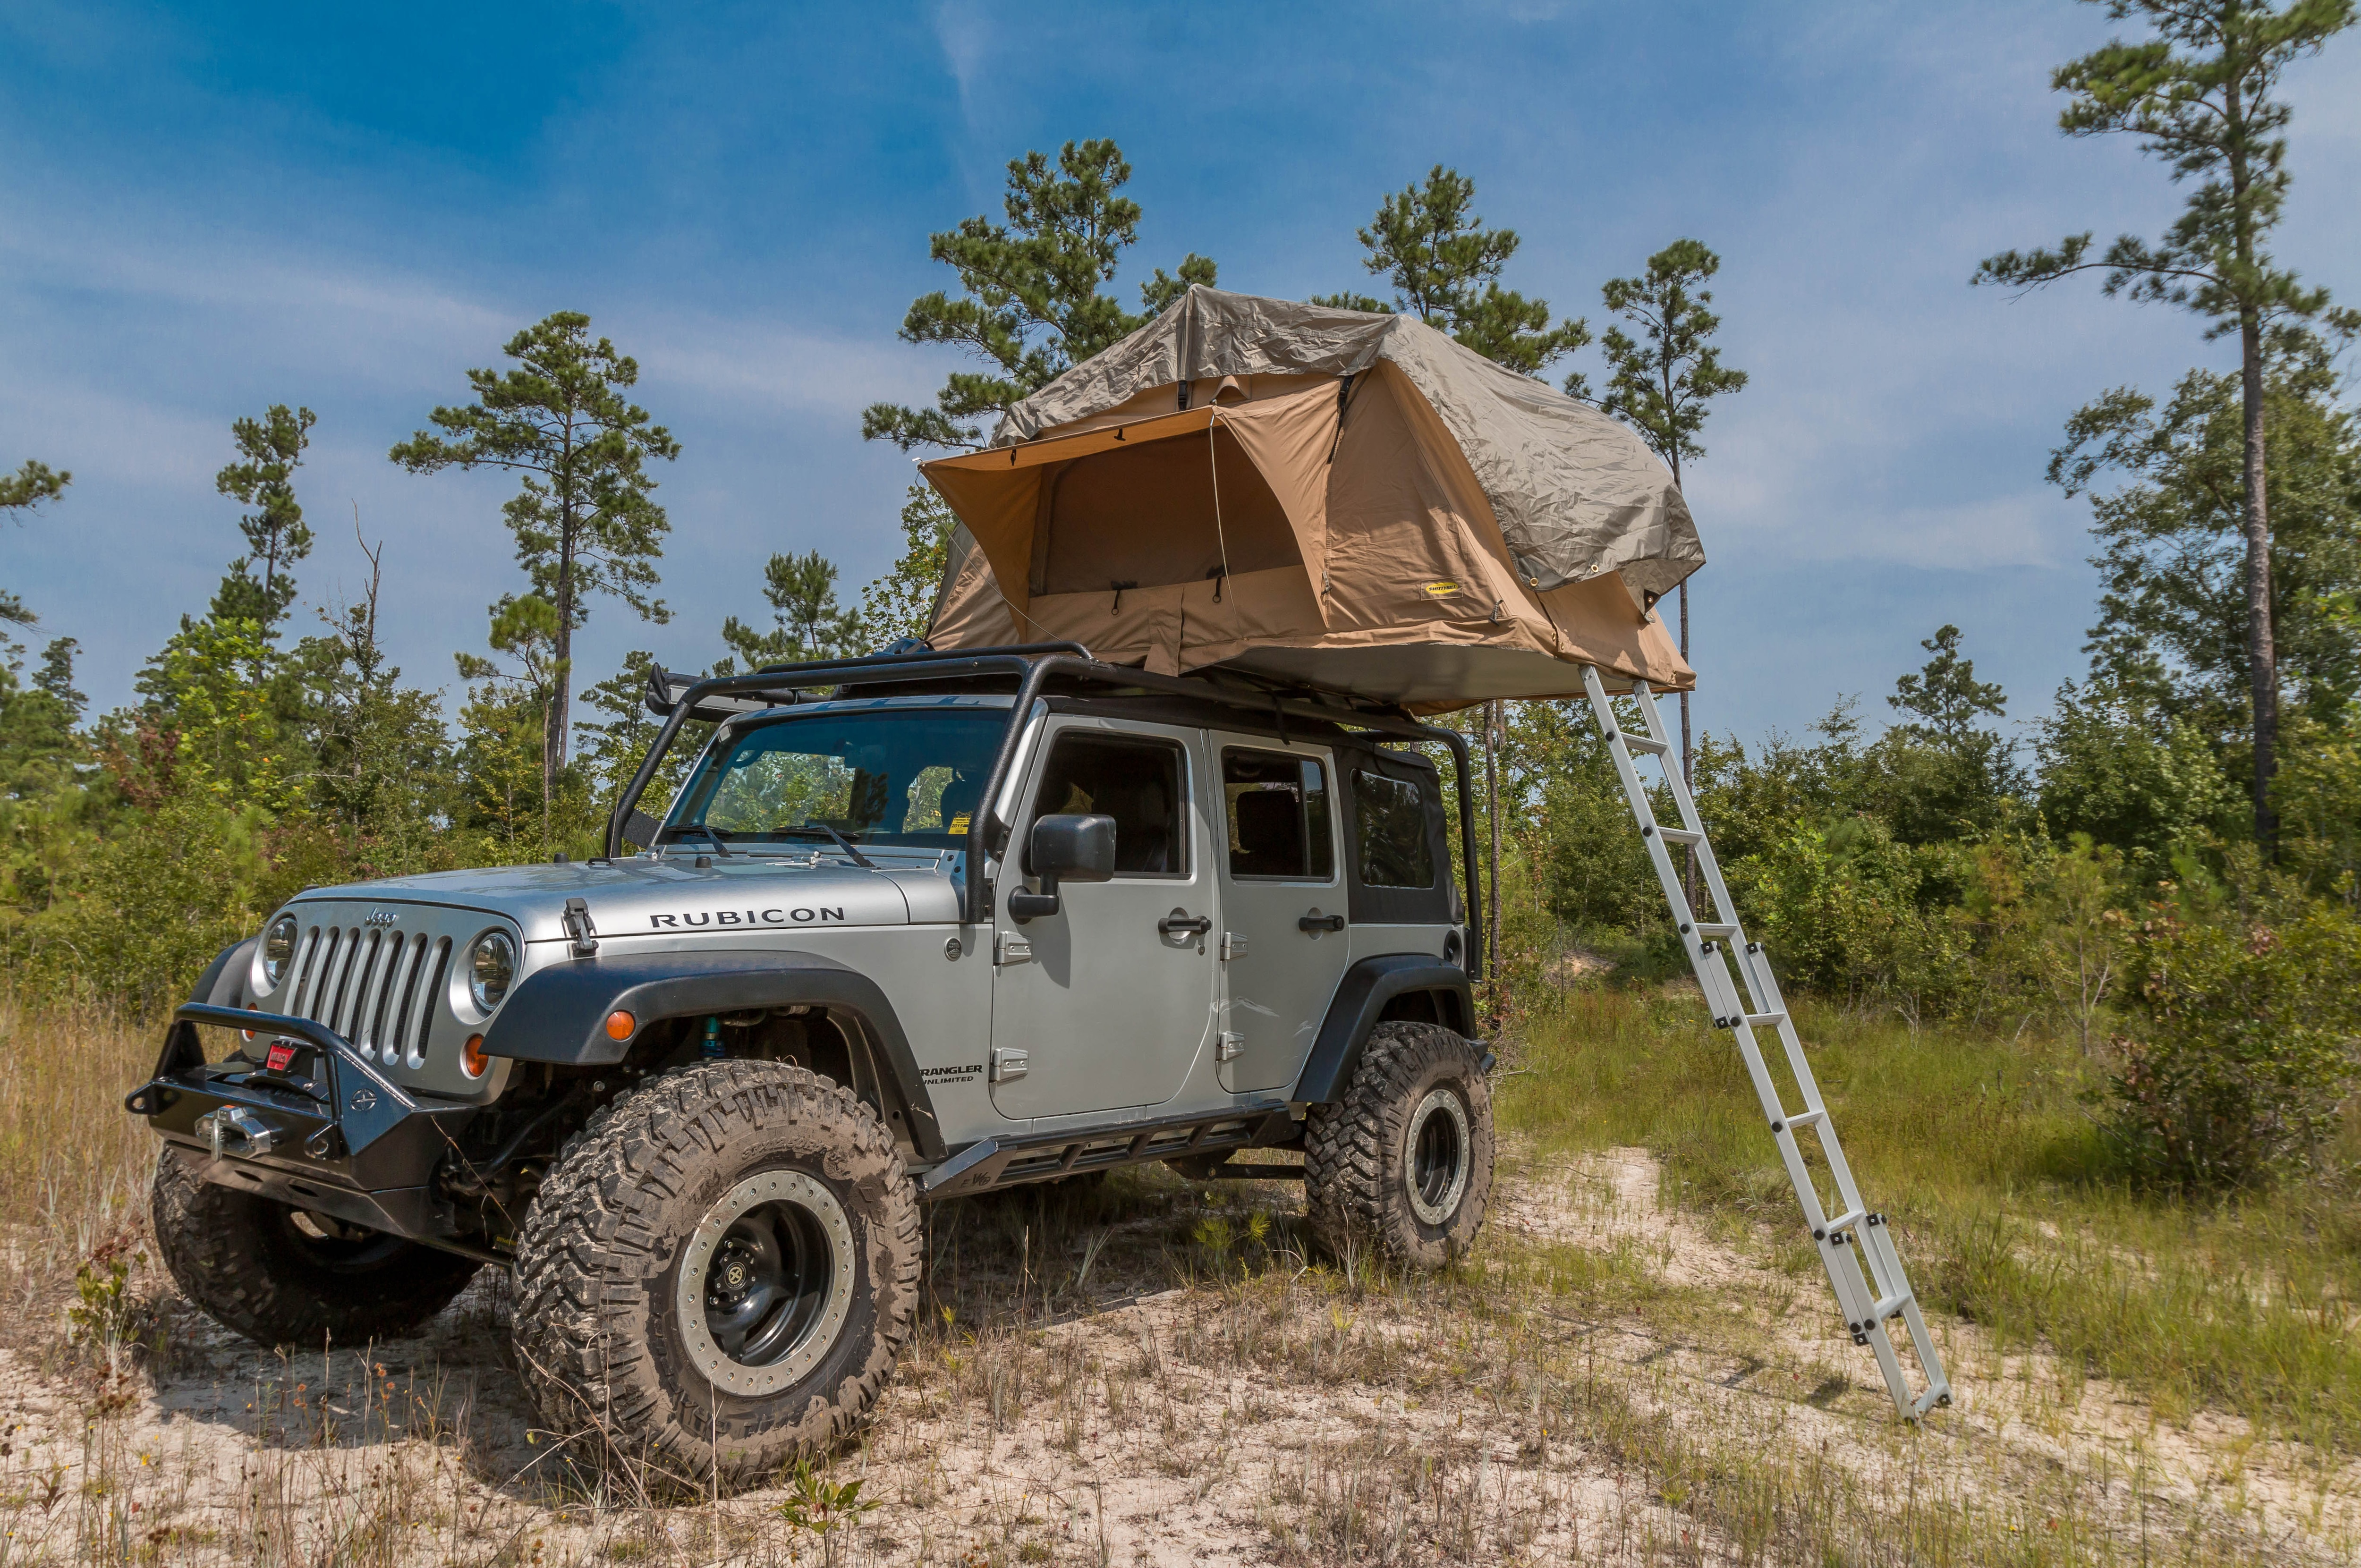 001 2007 Jeep Wrangler Unlimited Jk Smittybilt Roof Top ...